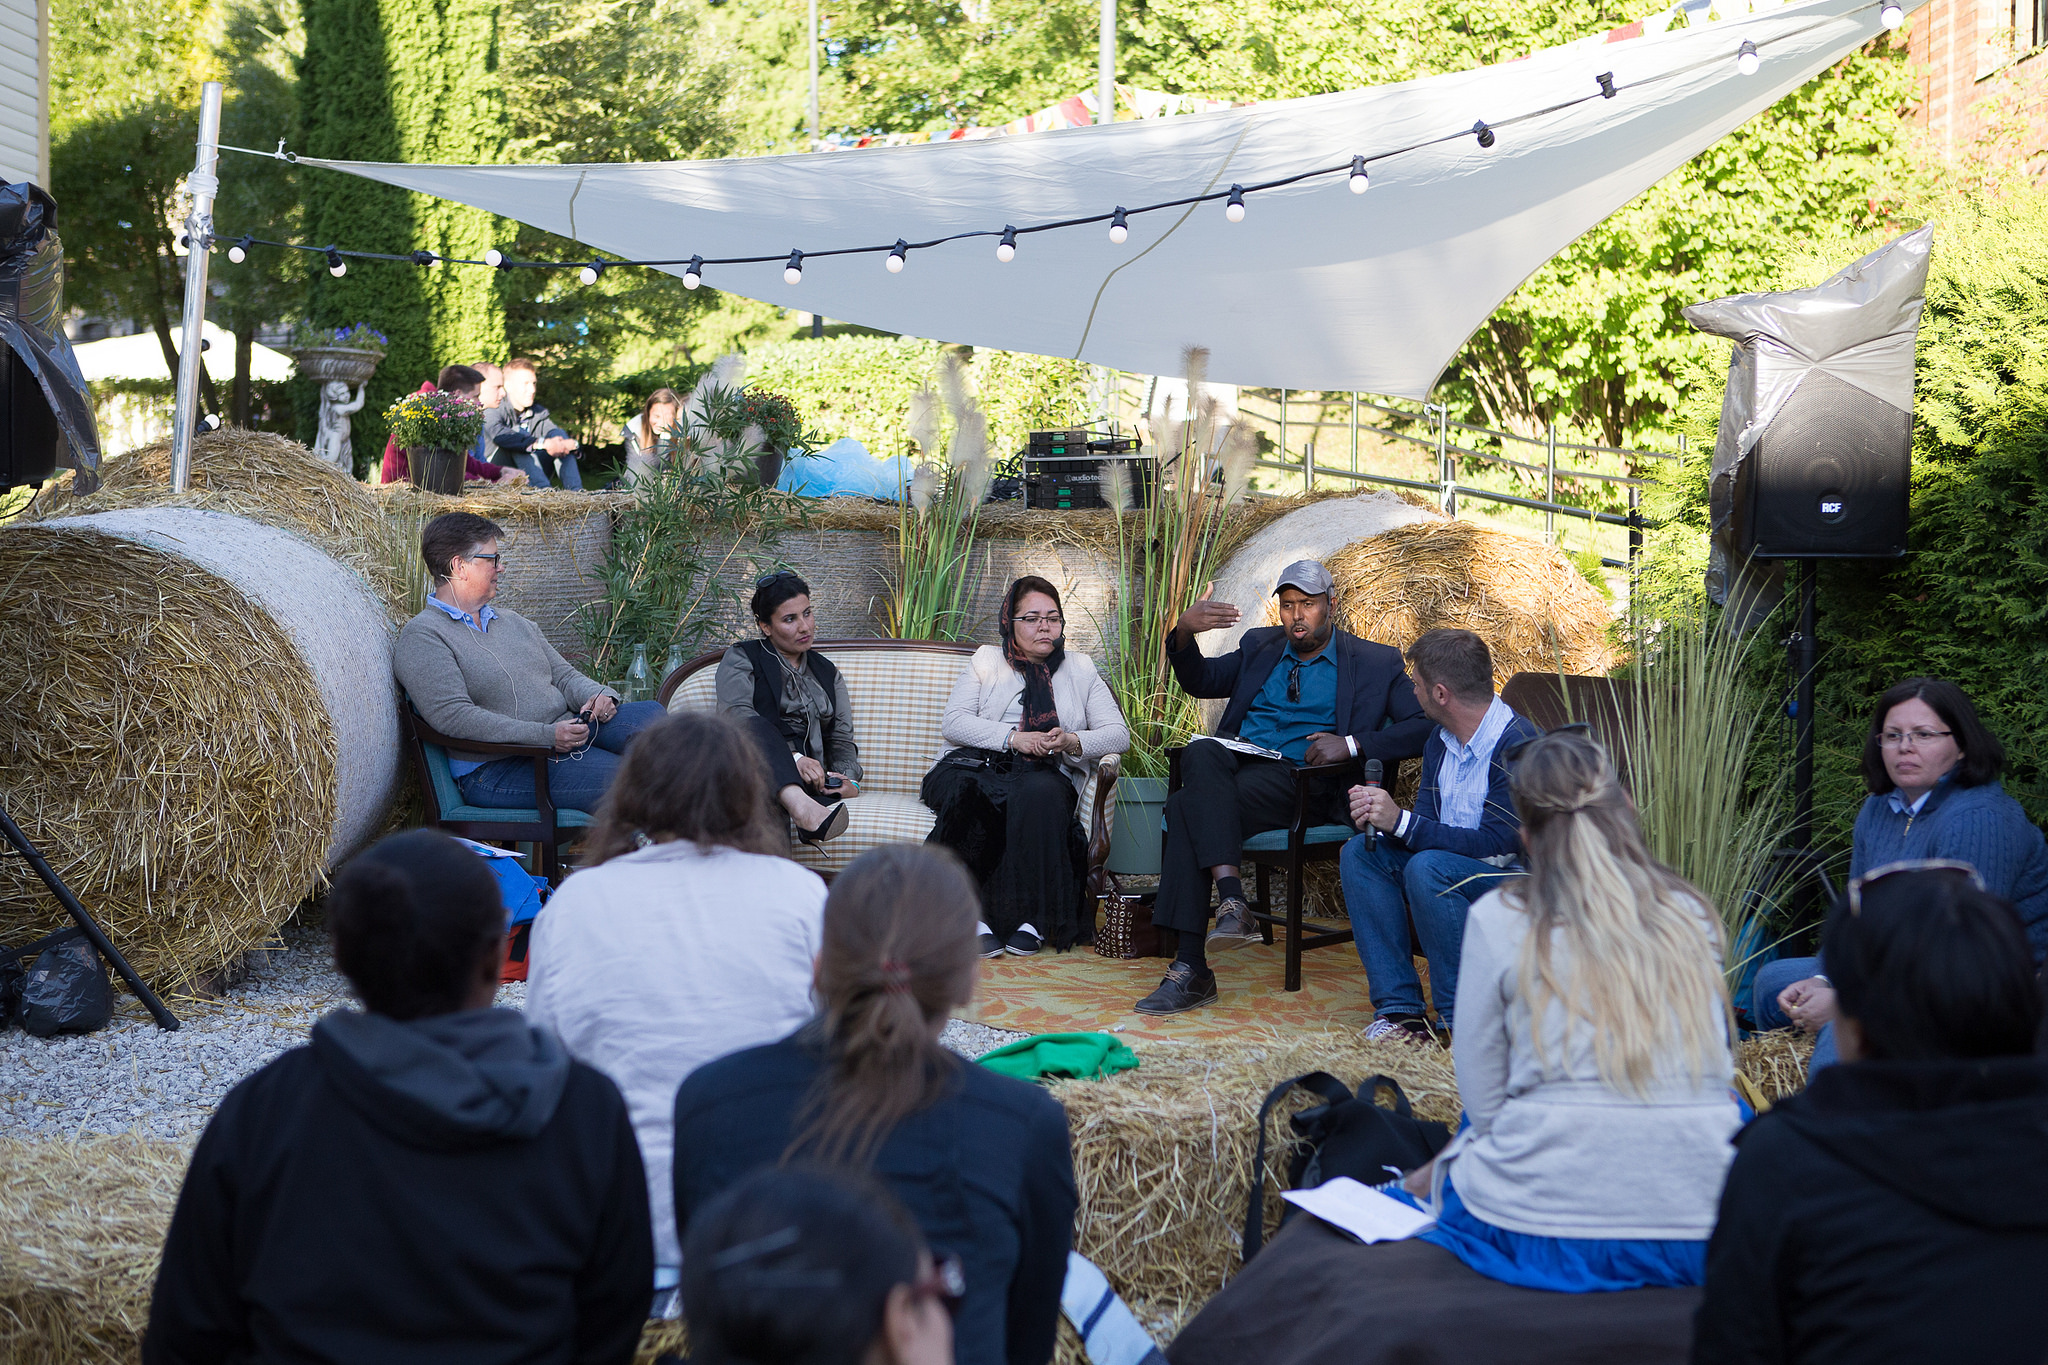 The 2017 Opinion Festival boosts English-language discussions in number and diversity